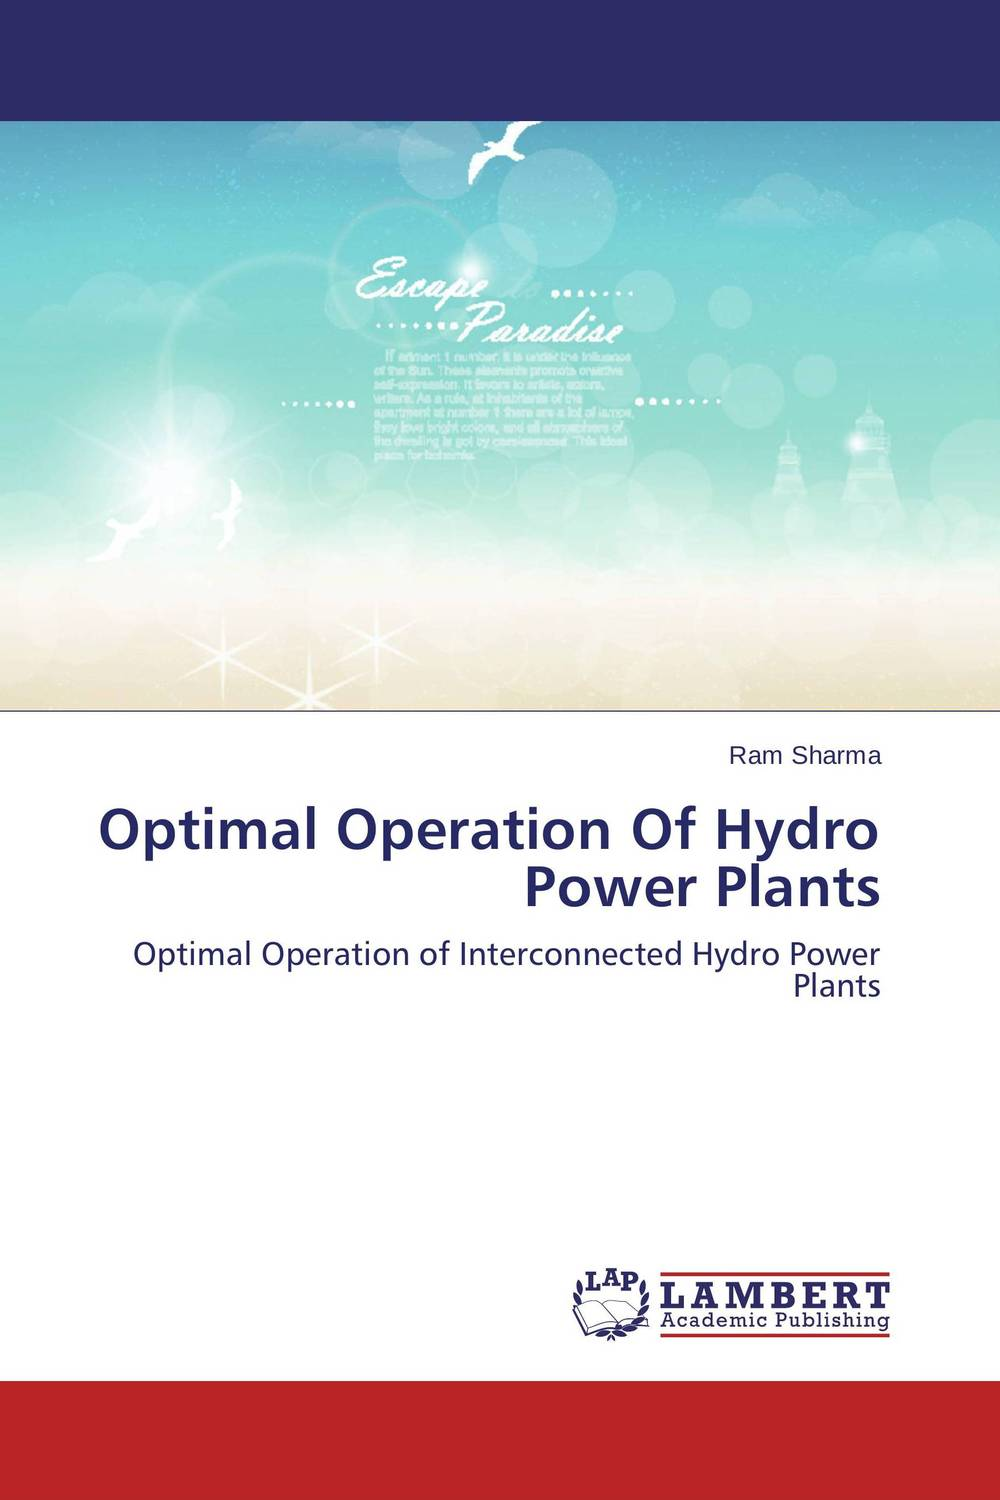 Optimal Operation Of Hydro Power Plants